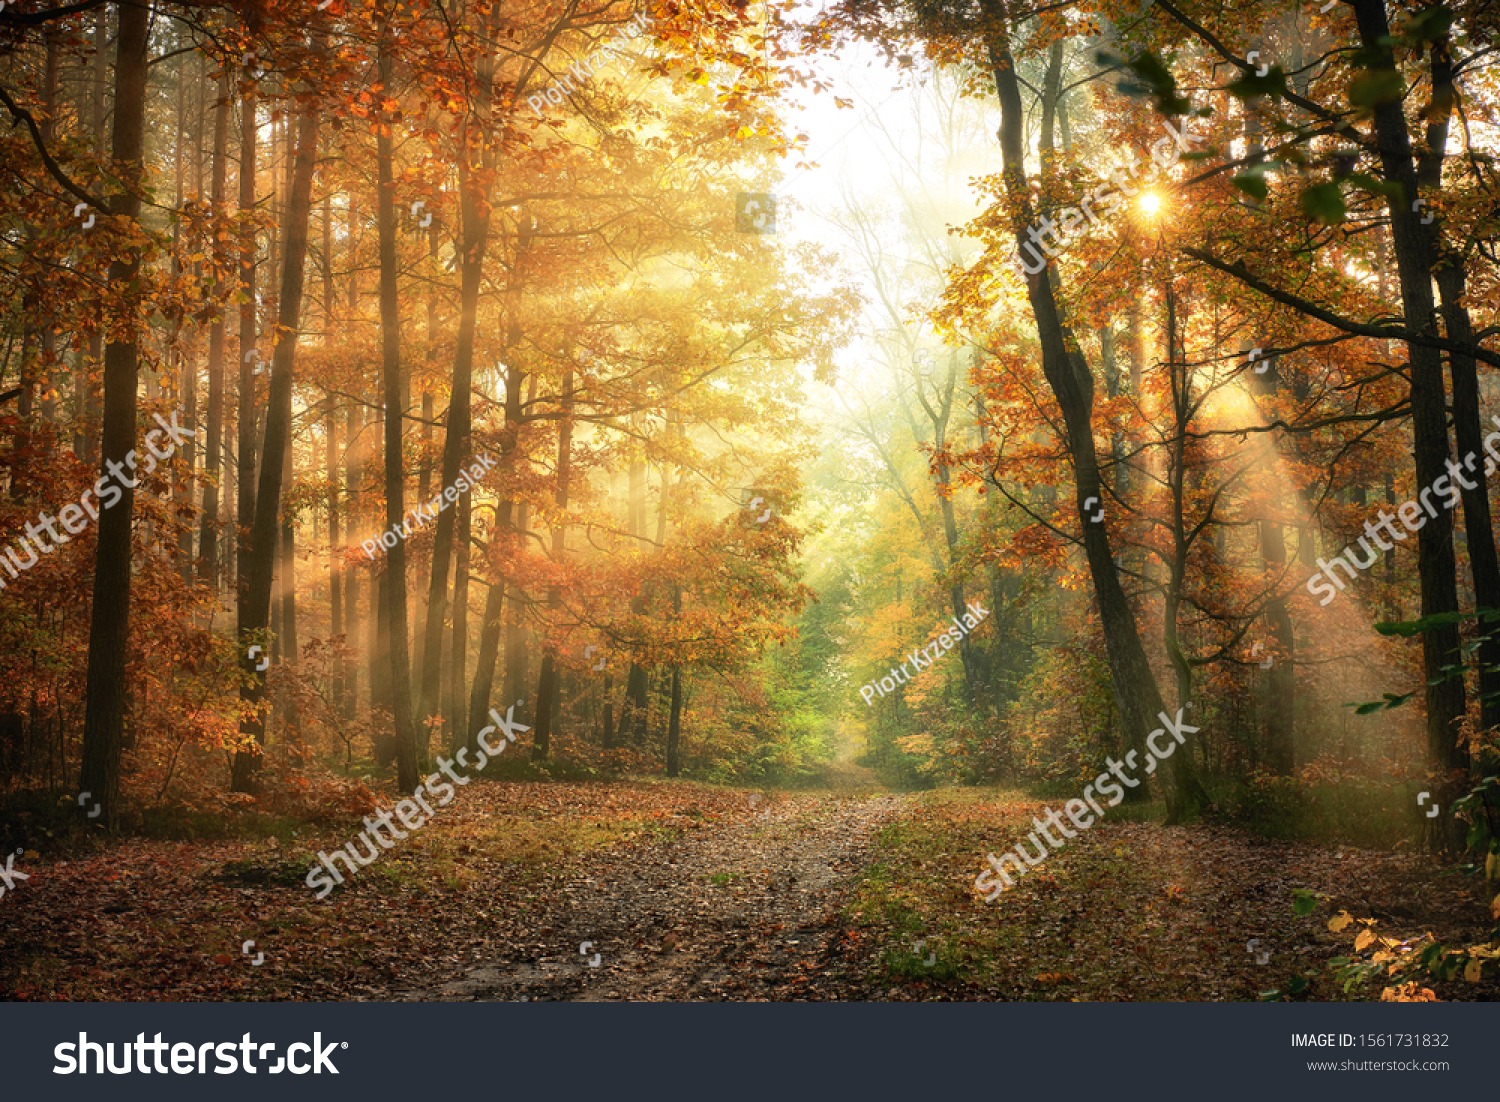 Autumn morning in the forest #1561731832